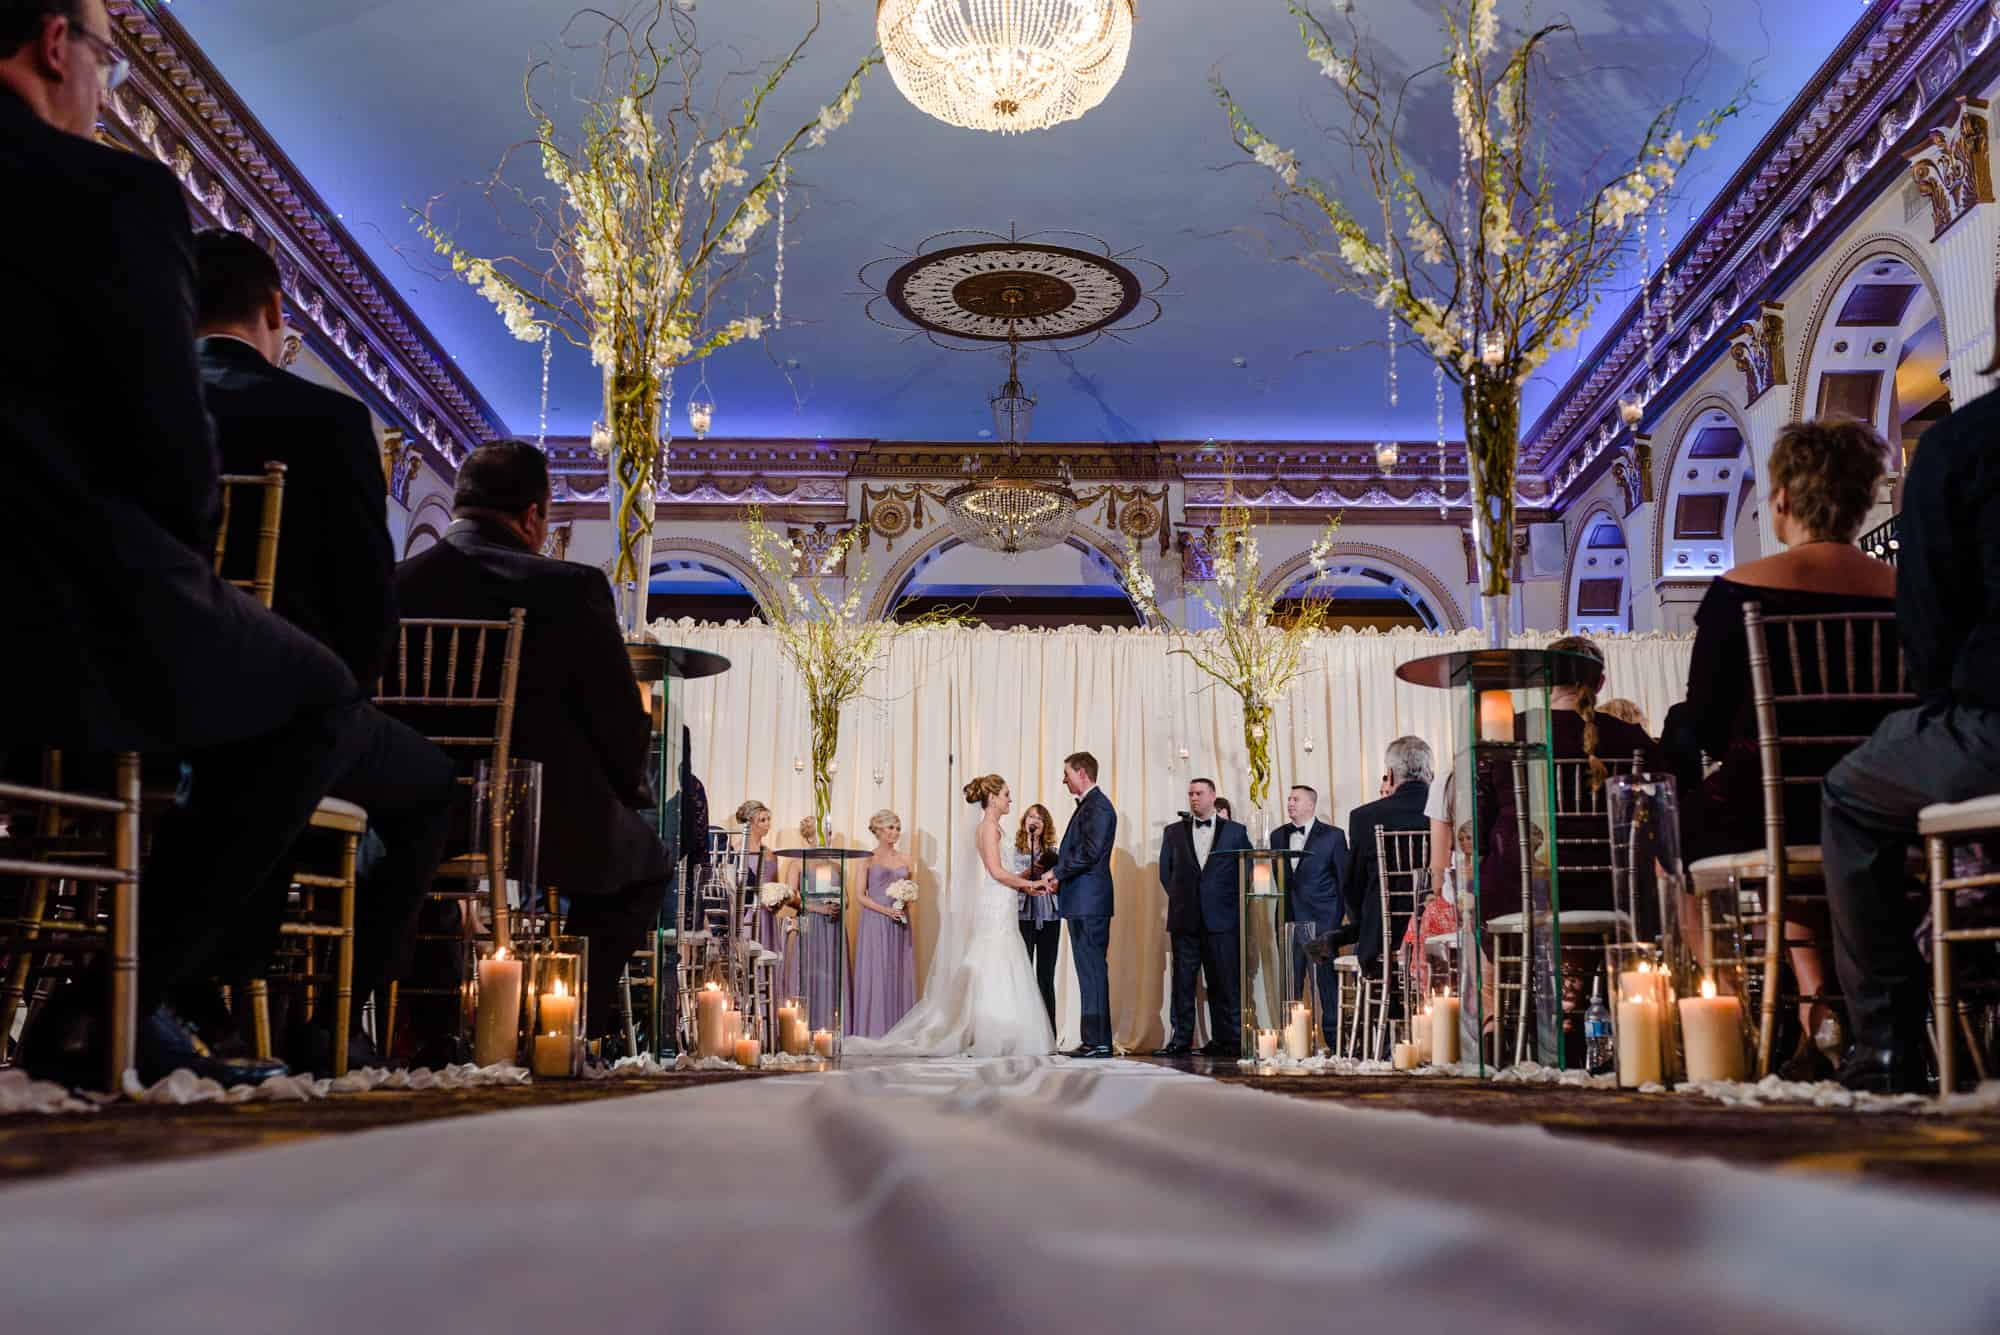 Bride and groom holding hands during ceremony at the Ballroom at the Ben